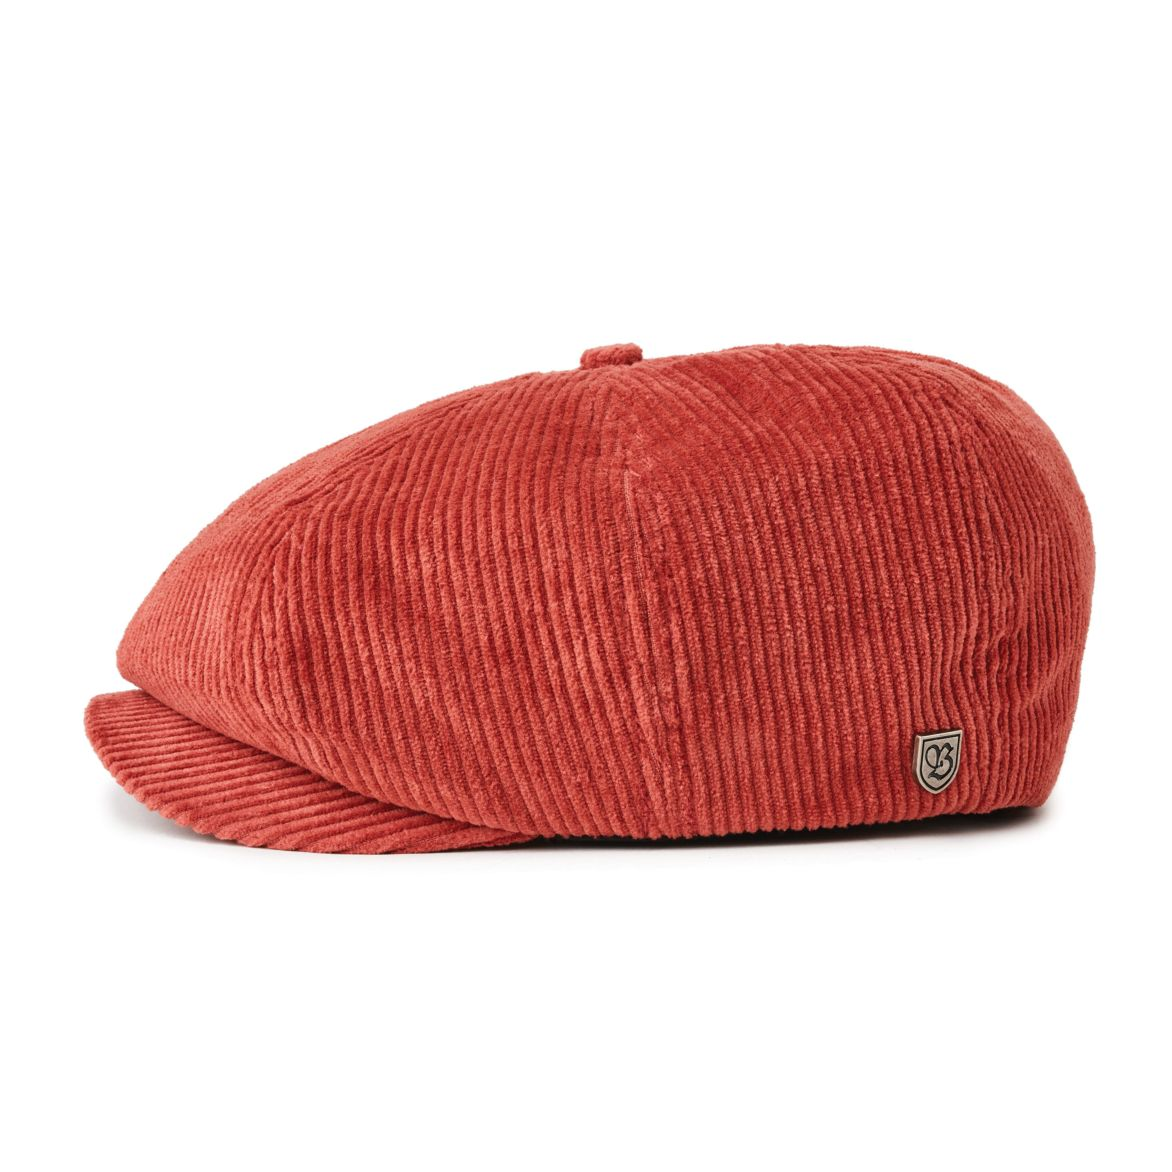 Brixton Brood Snap Cap Brick Cord